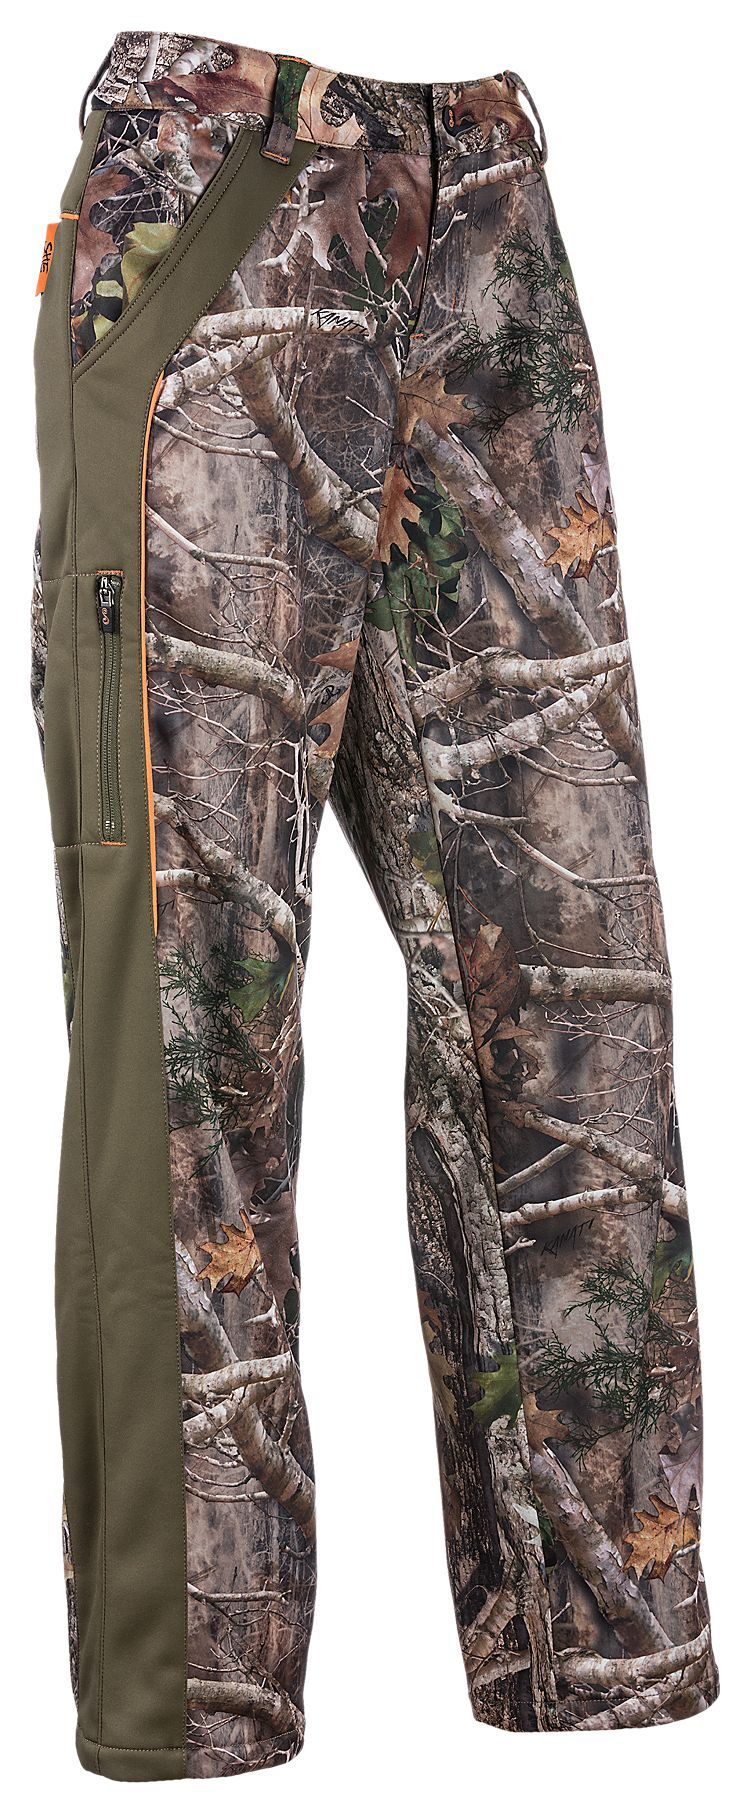 1481147396e5b SHE Outdoor EXP Fleece Pants for Ladies   Bass Pro Shops: The Best Hunting,  Fishing, Camping & Outdoor Gear